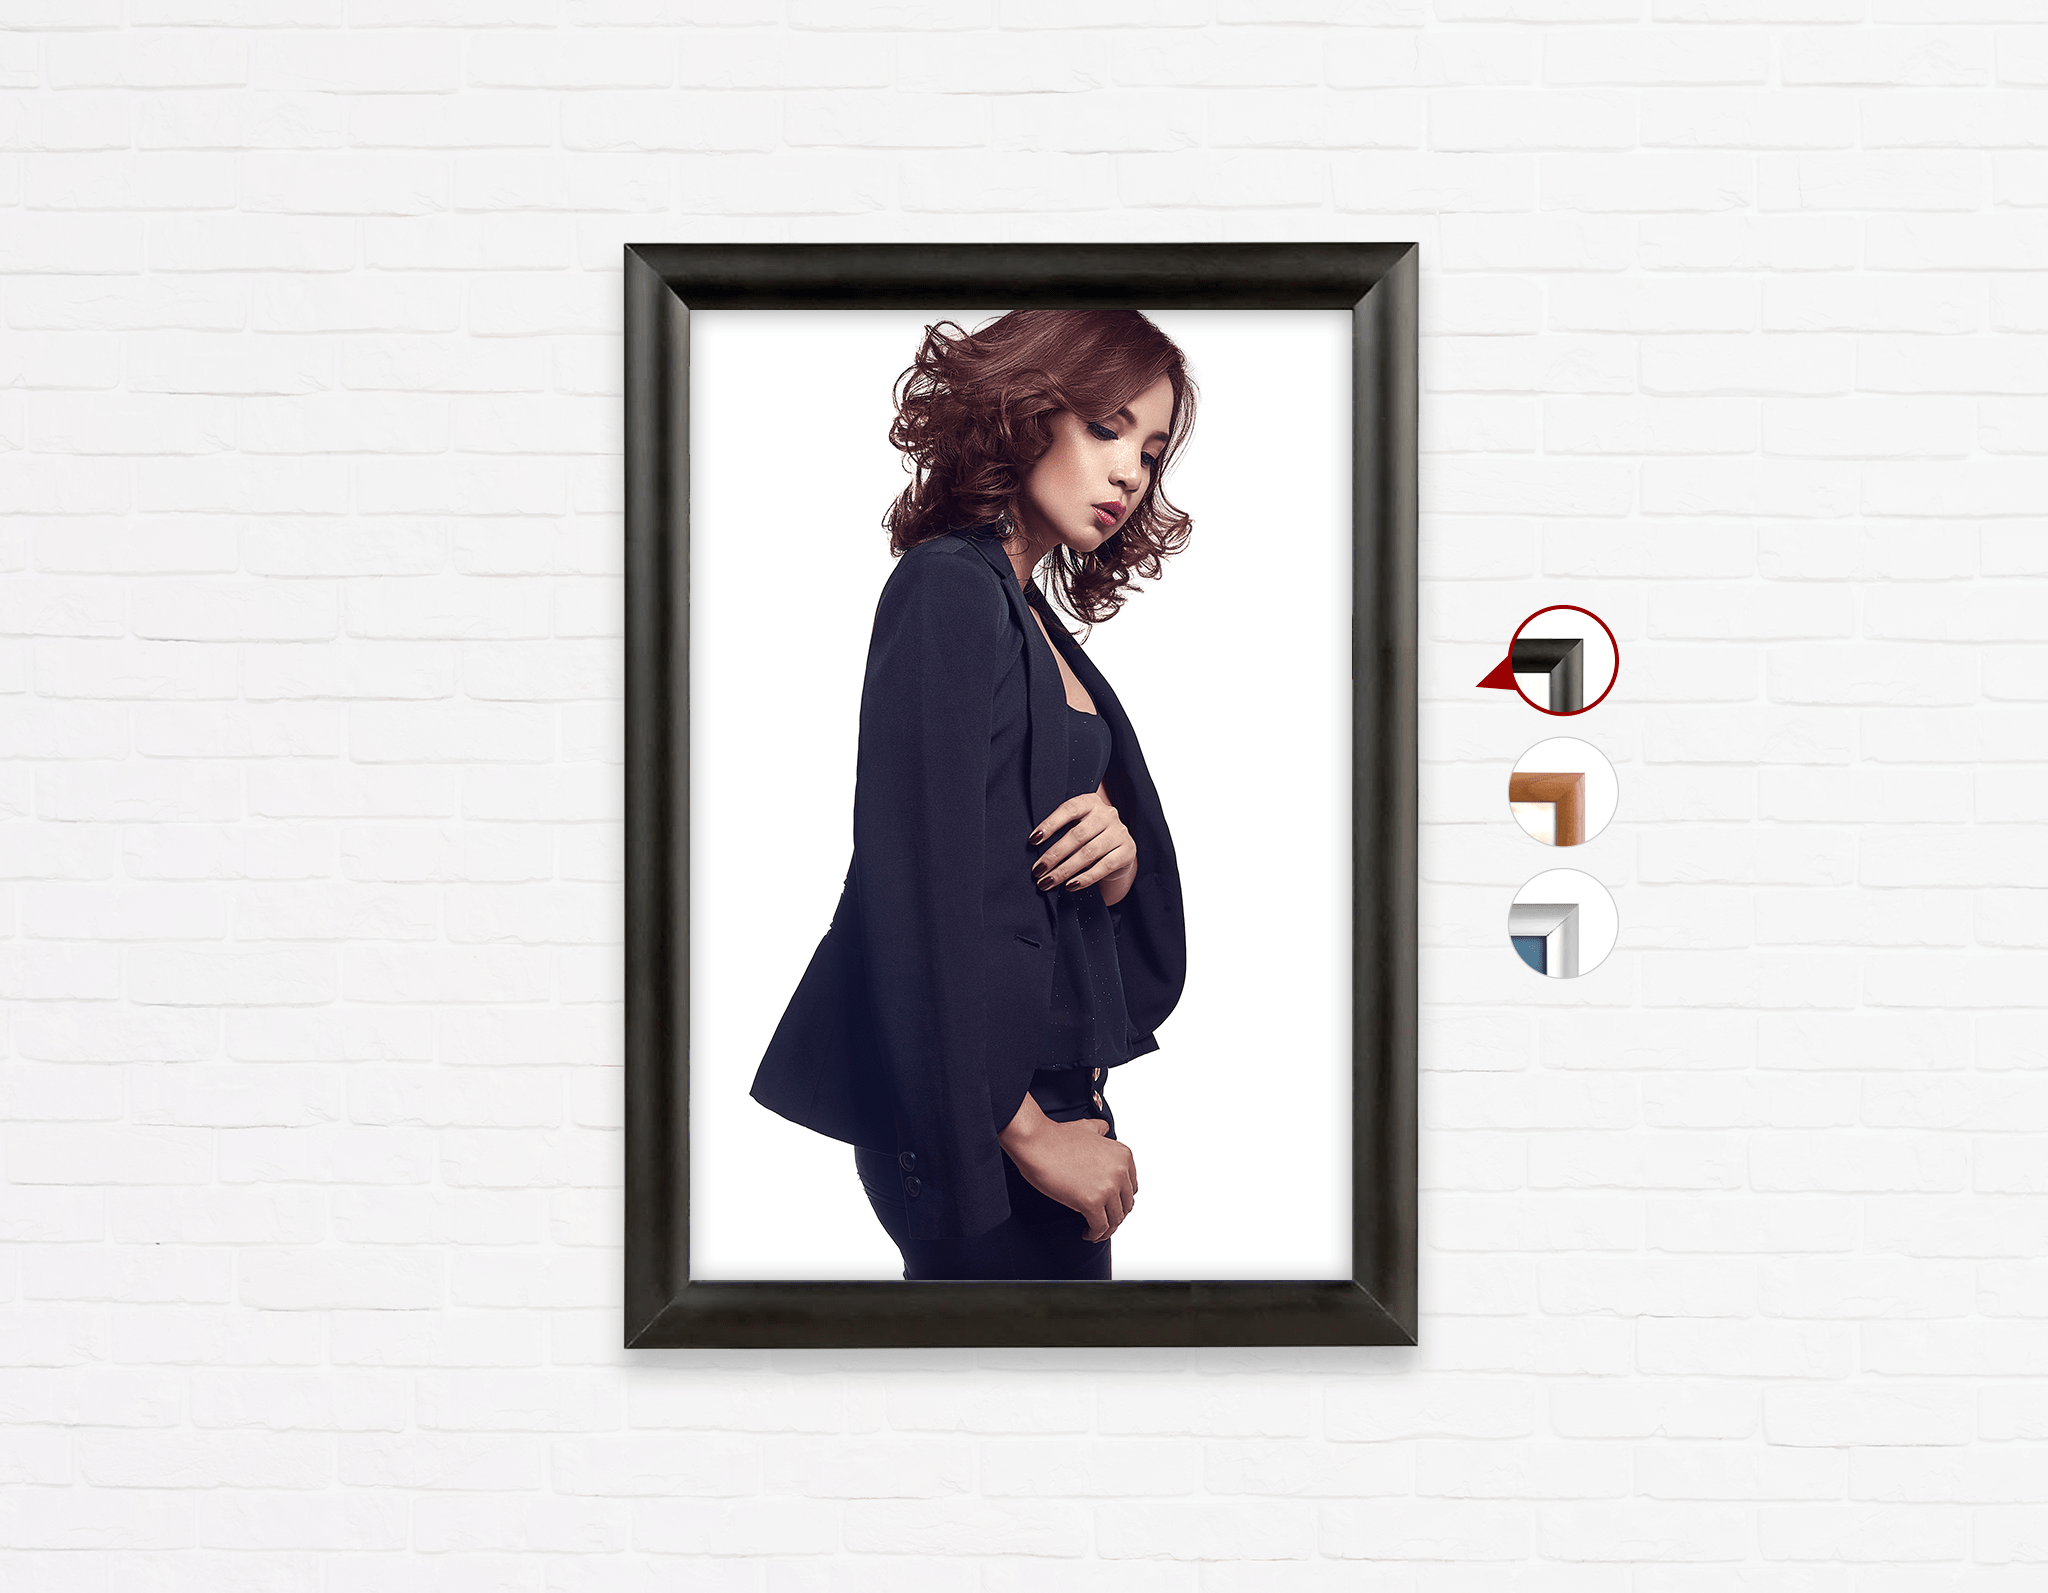 Salon Poster Click Frames, One-Sided: Woman with Messy Tousle and Center Parts